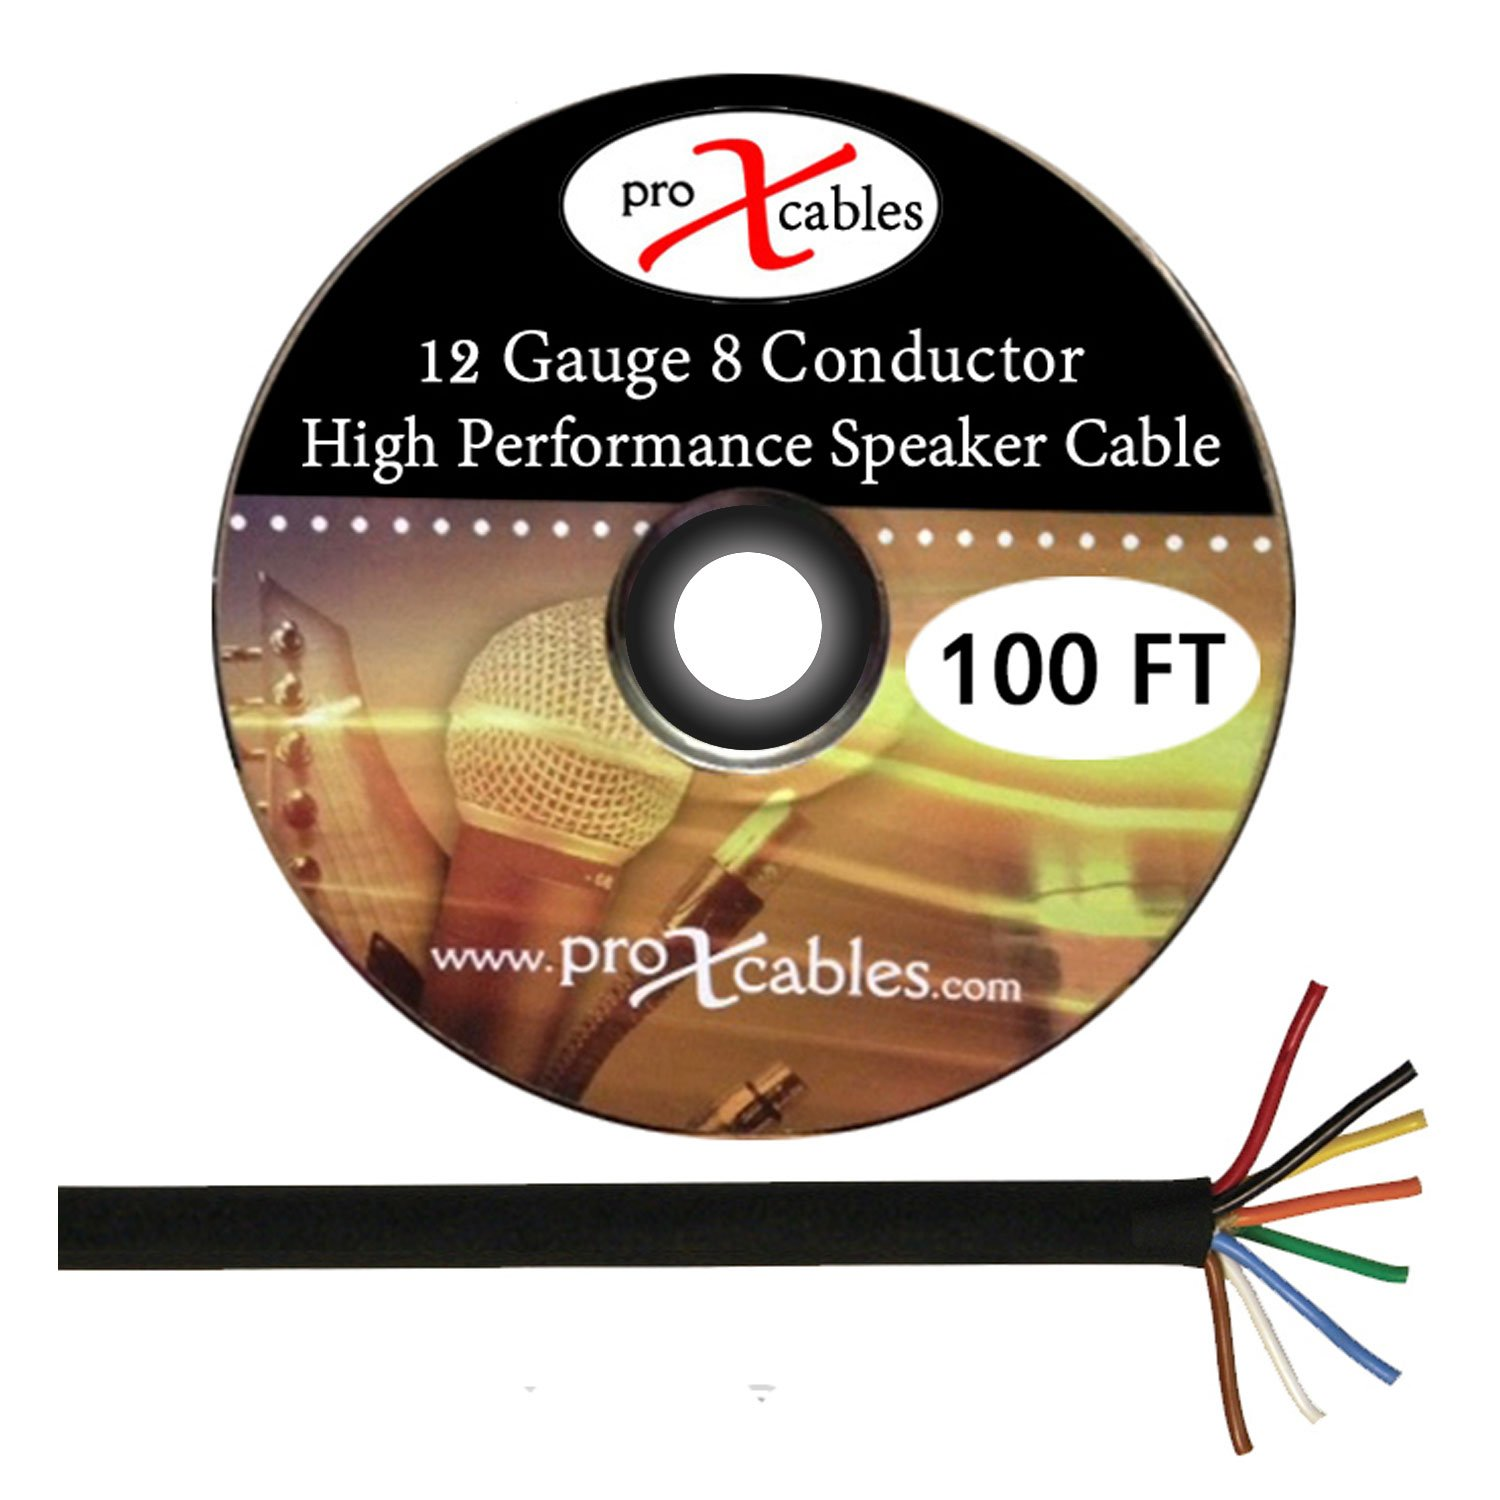 ProX Cables XC-8 COND-100FT - 12 Gauge 8 Conductor High Performance Cable 100 Ft. Roll